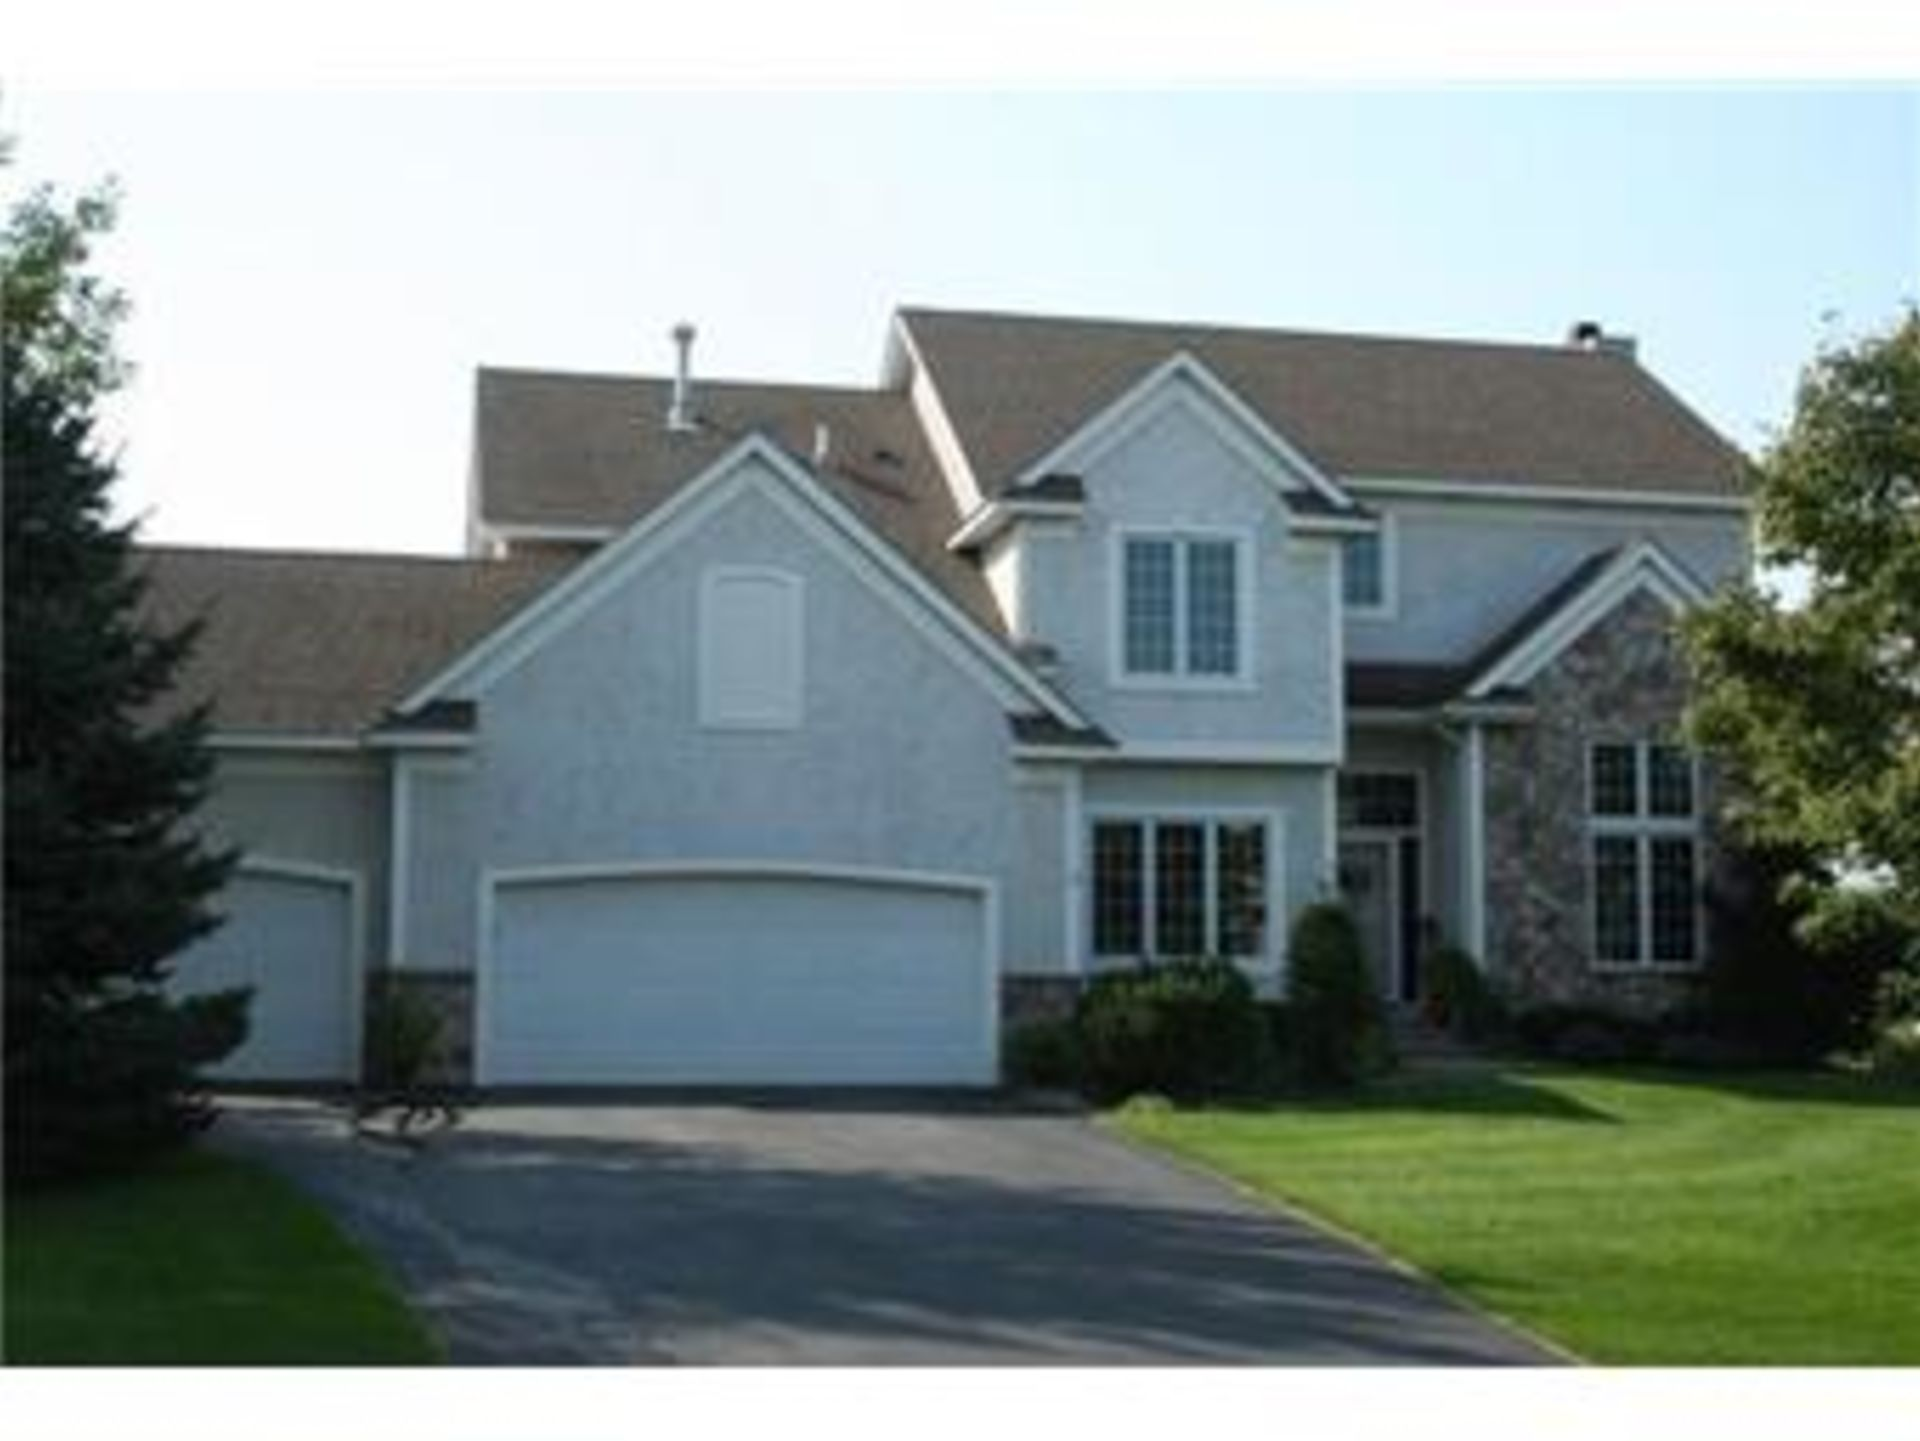 OPEN HOUSE Sunday February 16th 1-3 PM at 3296 Richmond Alcove Woodbury